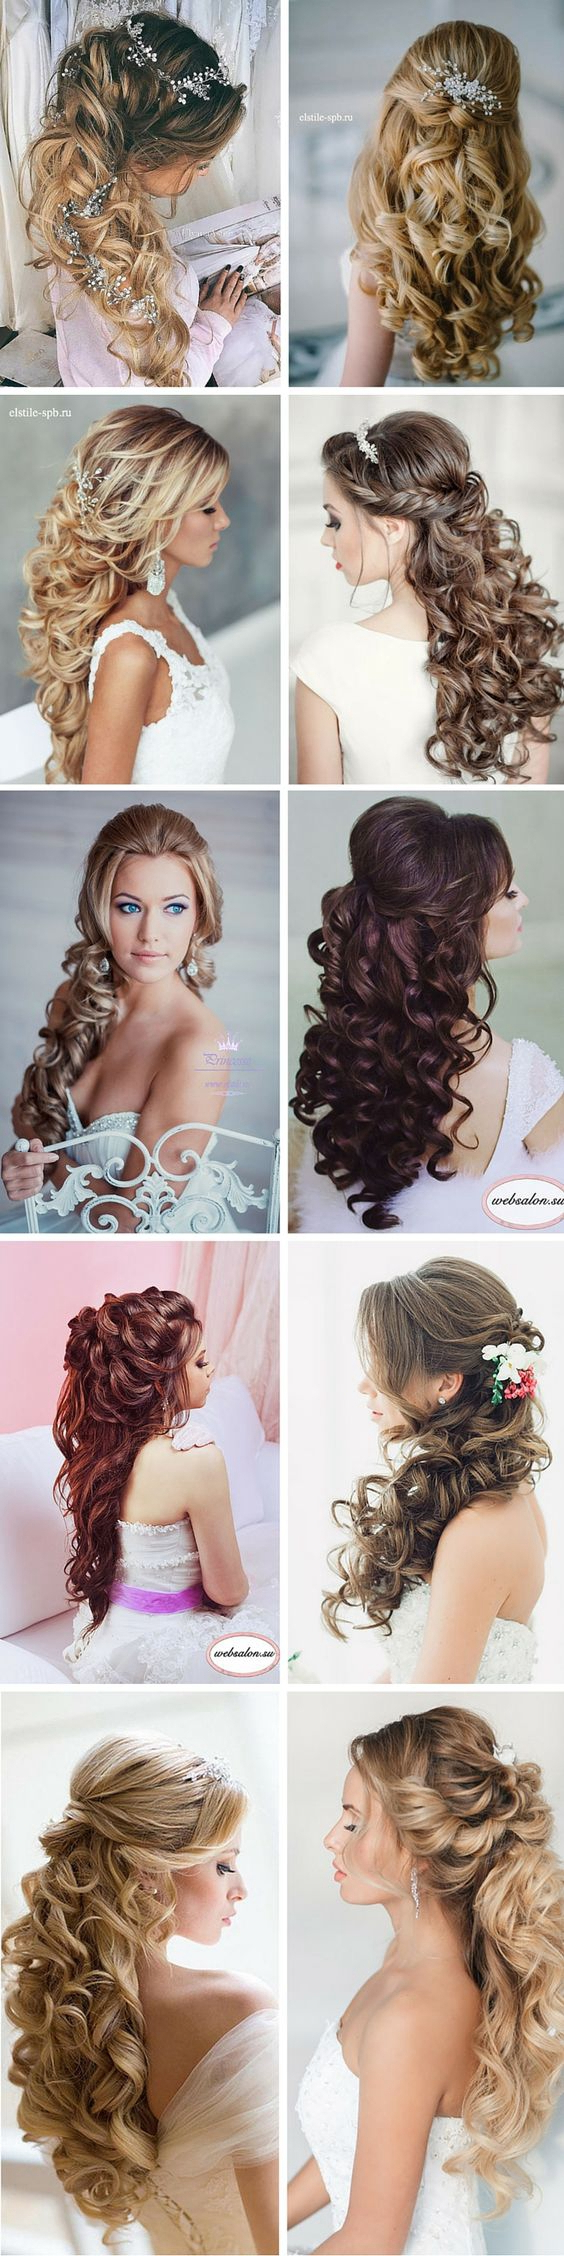 Widely Used Large Curl Updos For Brides Intended For 100+ Romantic Long Wedding Hairstyles 2019 – Curls, Half Up, Updos (View 20 of 20)